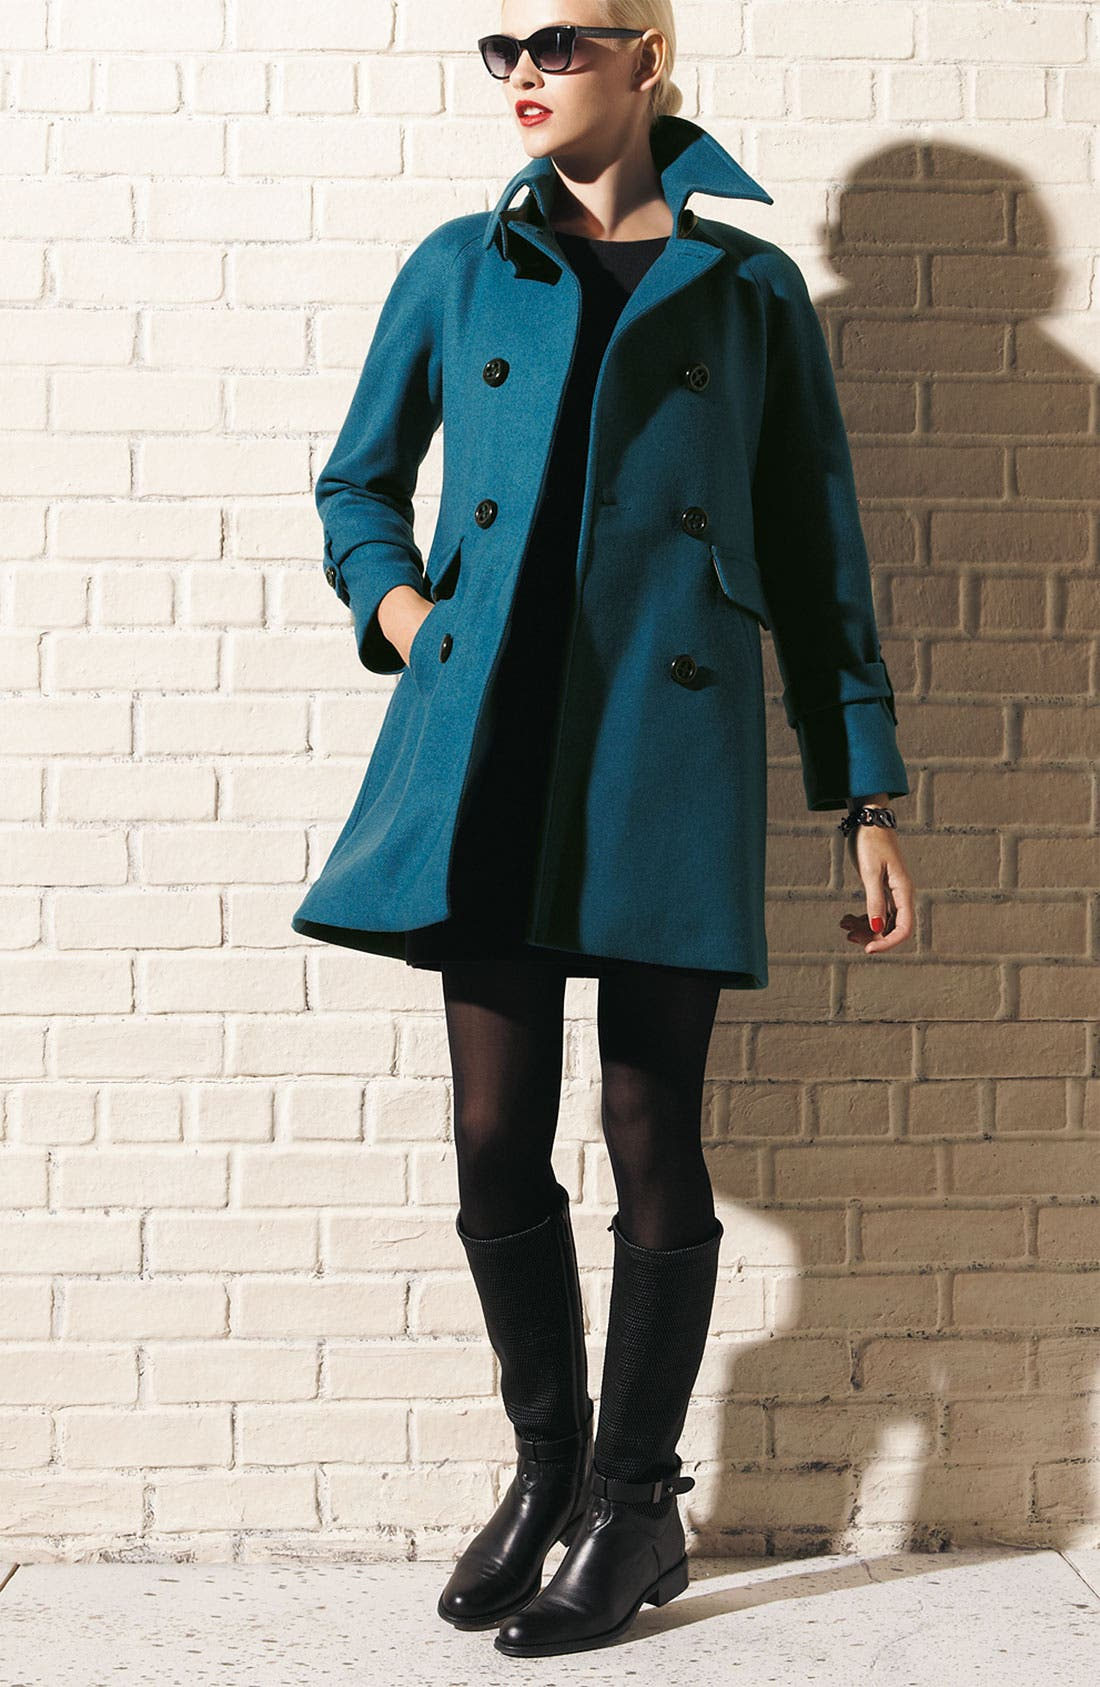 Alternate Image 1 Selected - Trina Turk Coat & kate spade new york dress